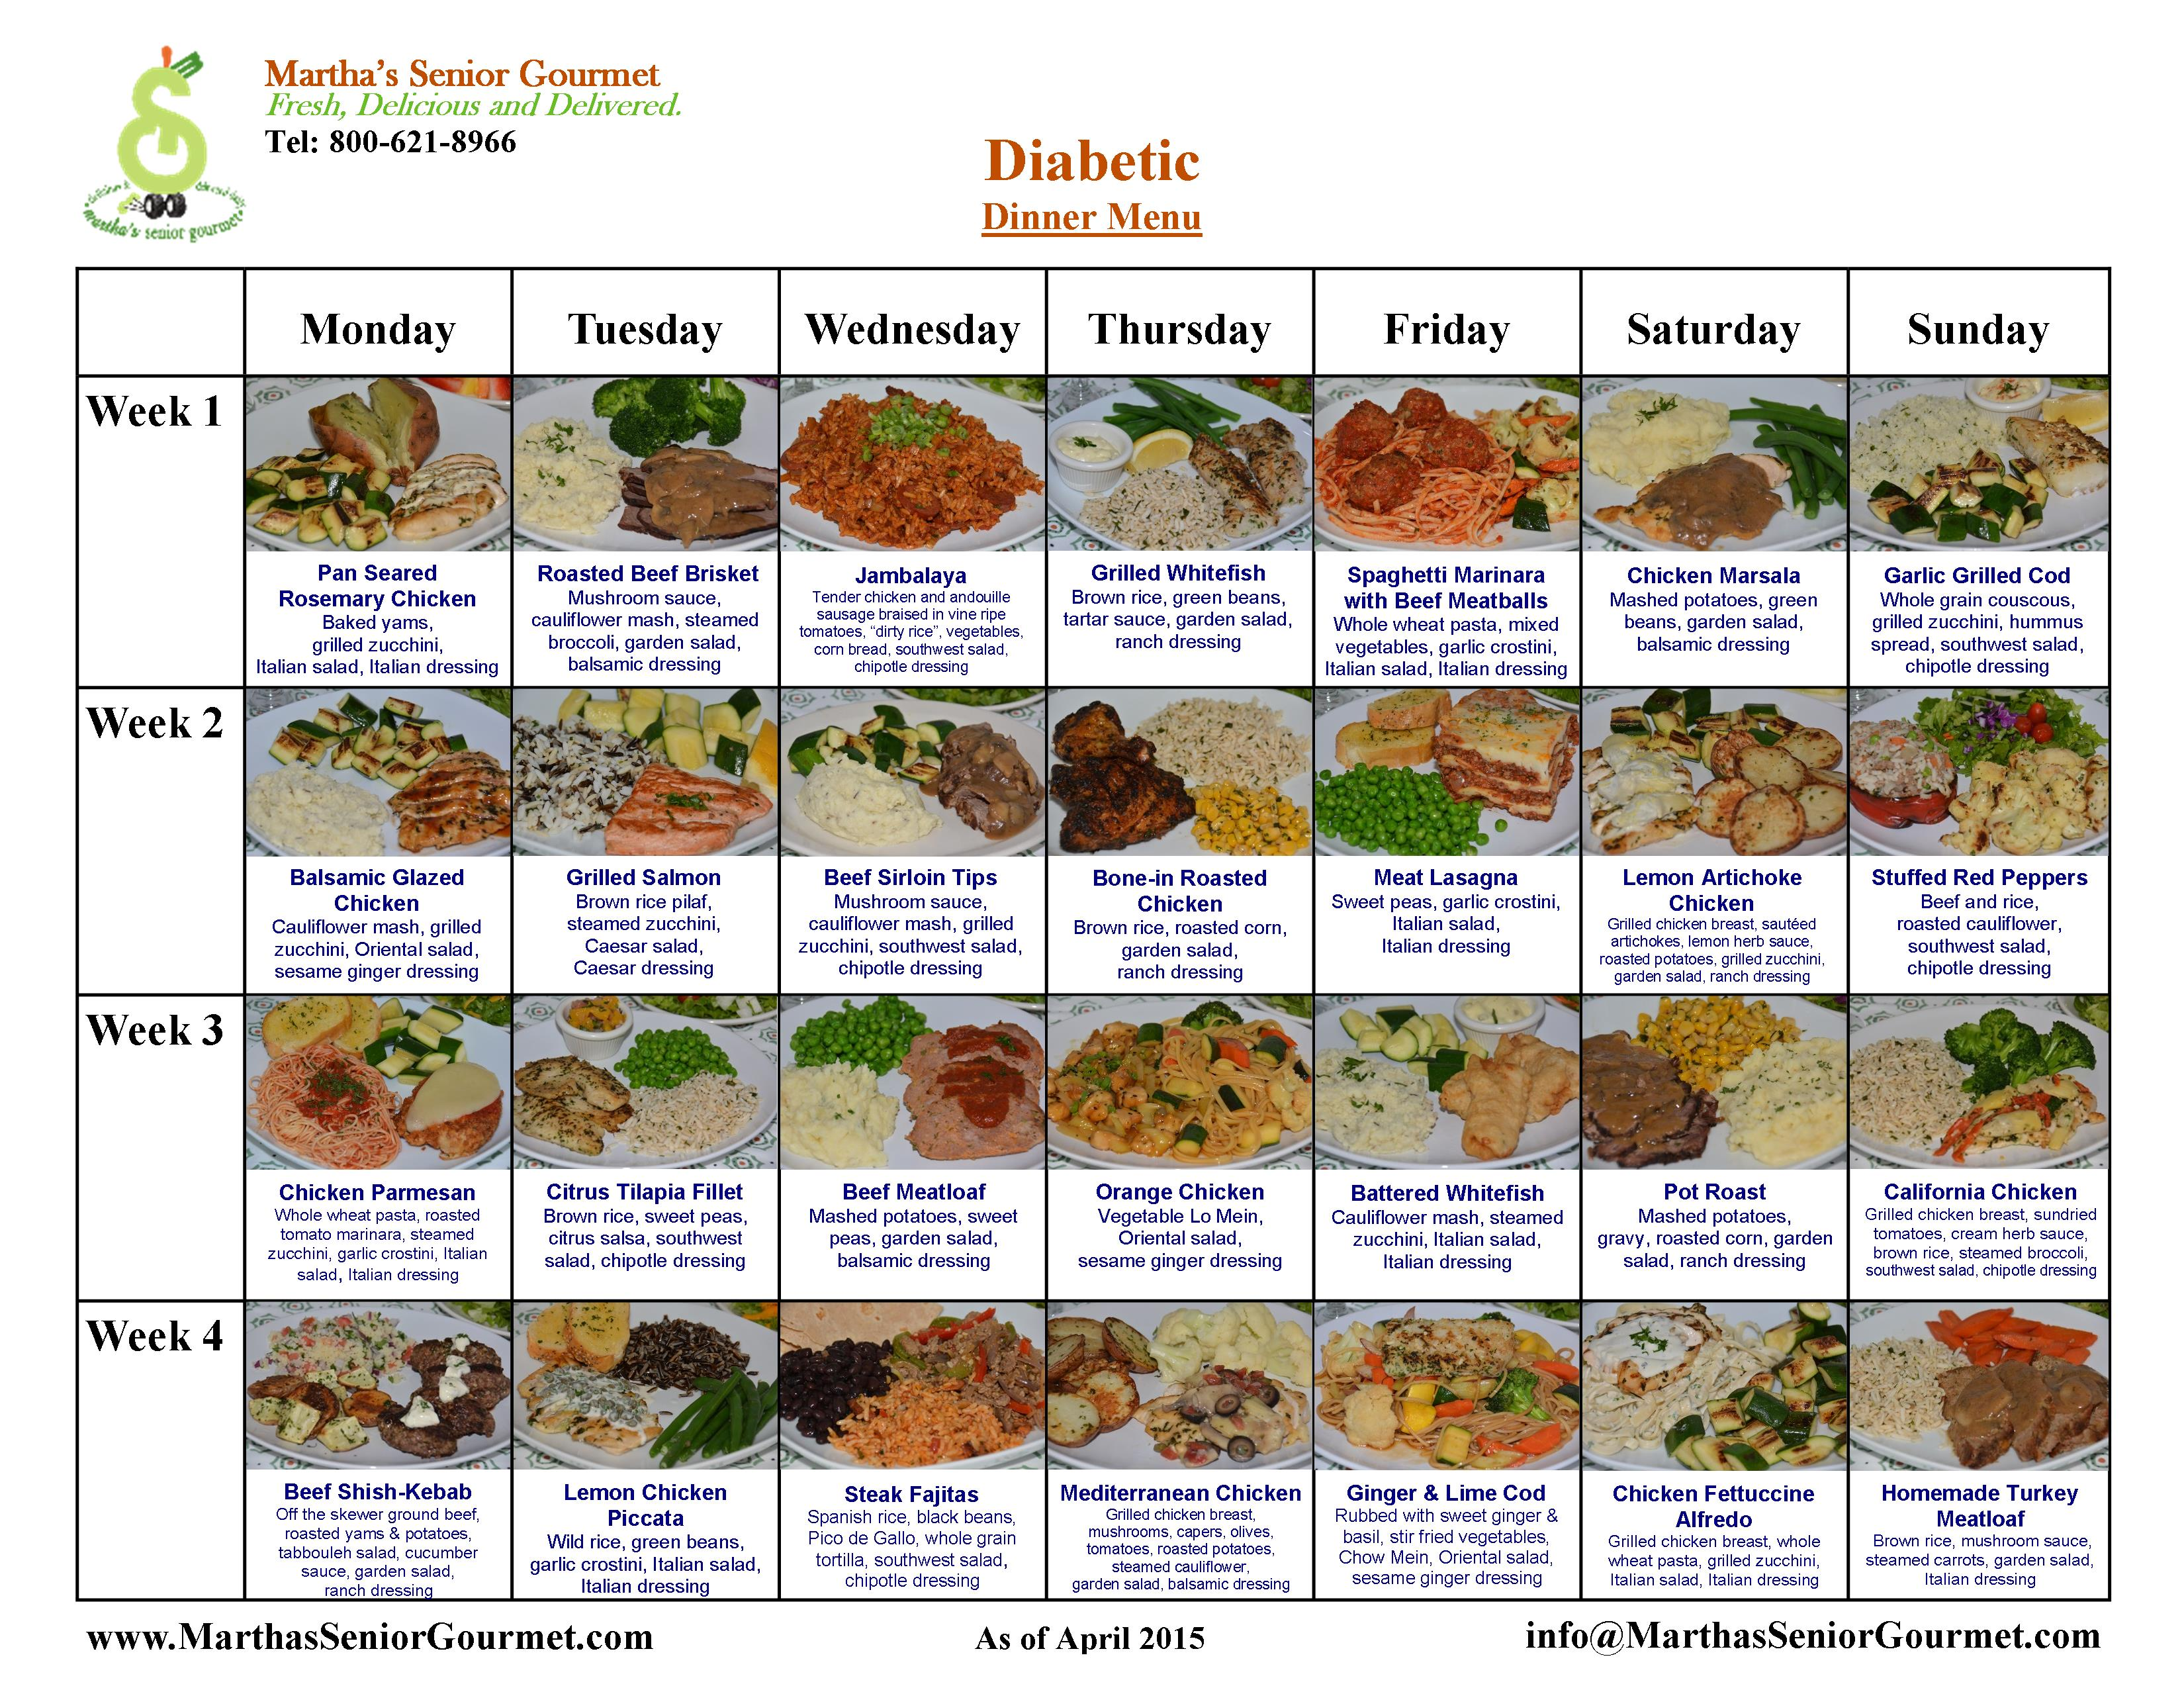 Fast Food Lunch Ideas For Diabetics